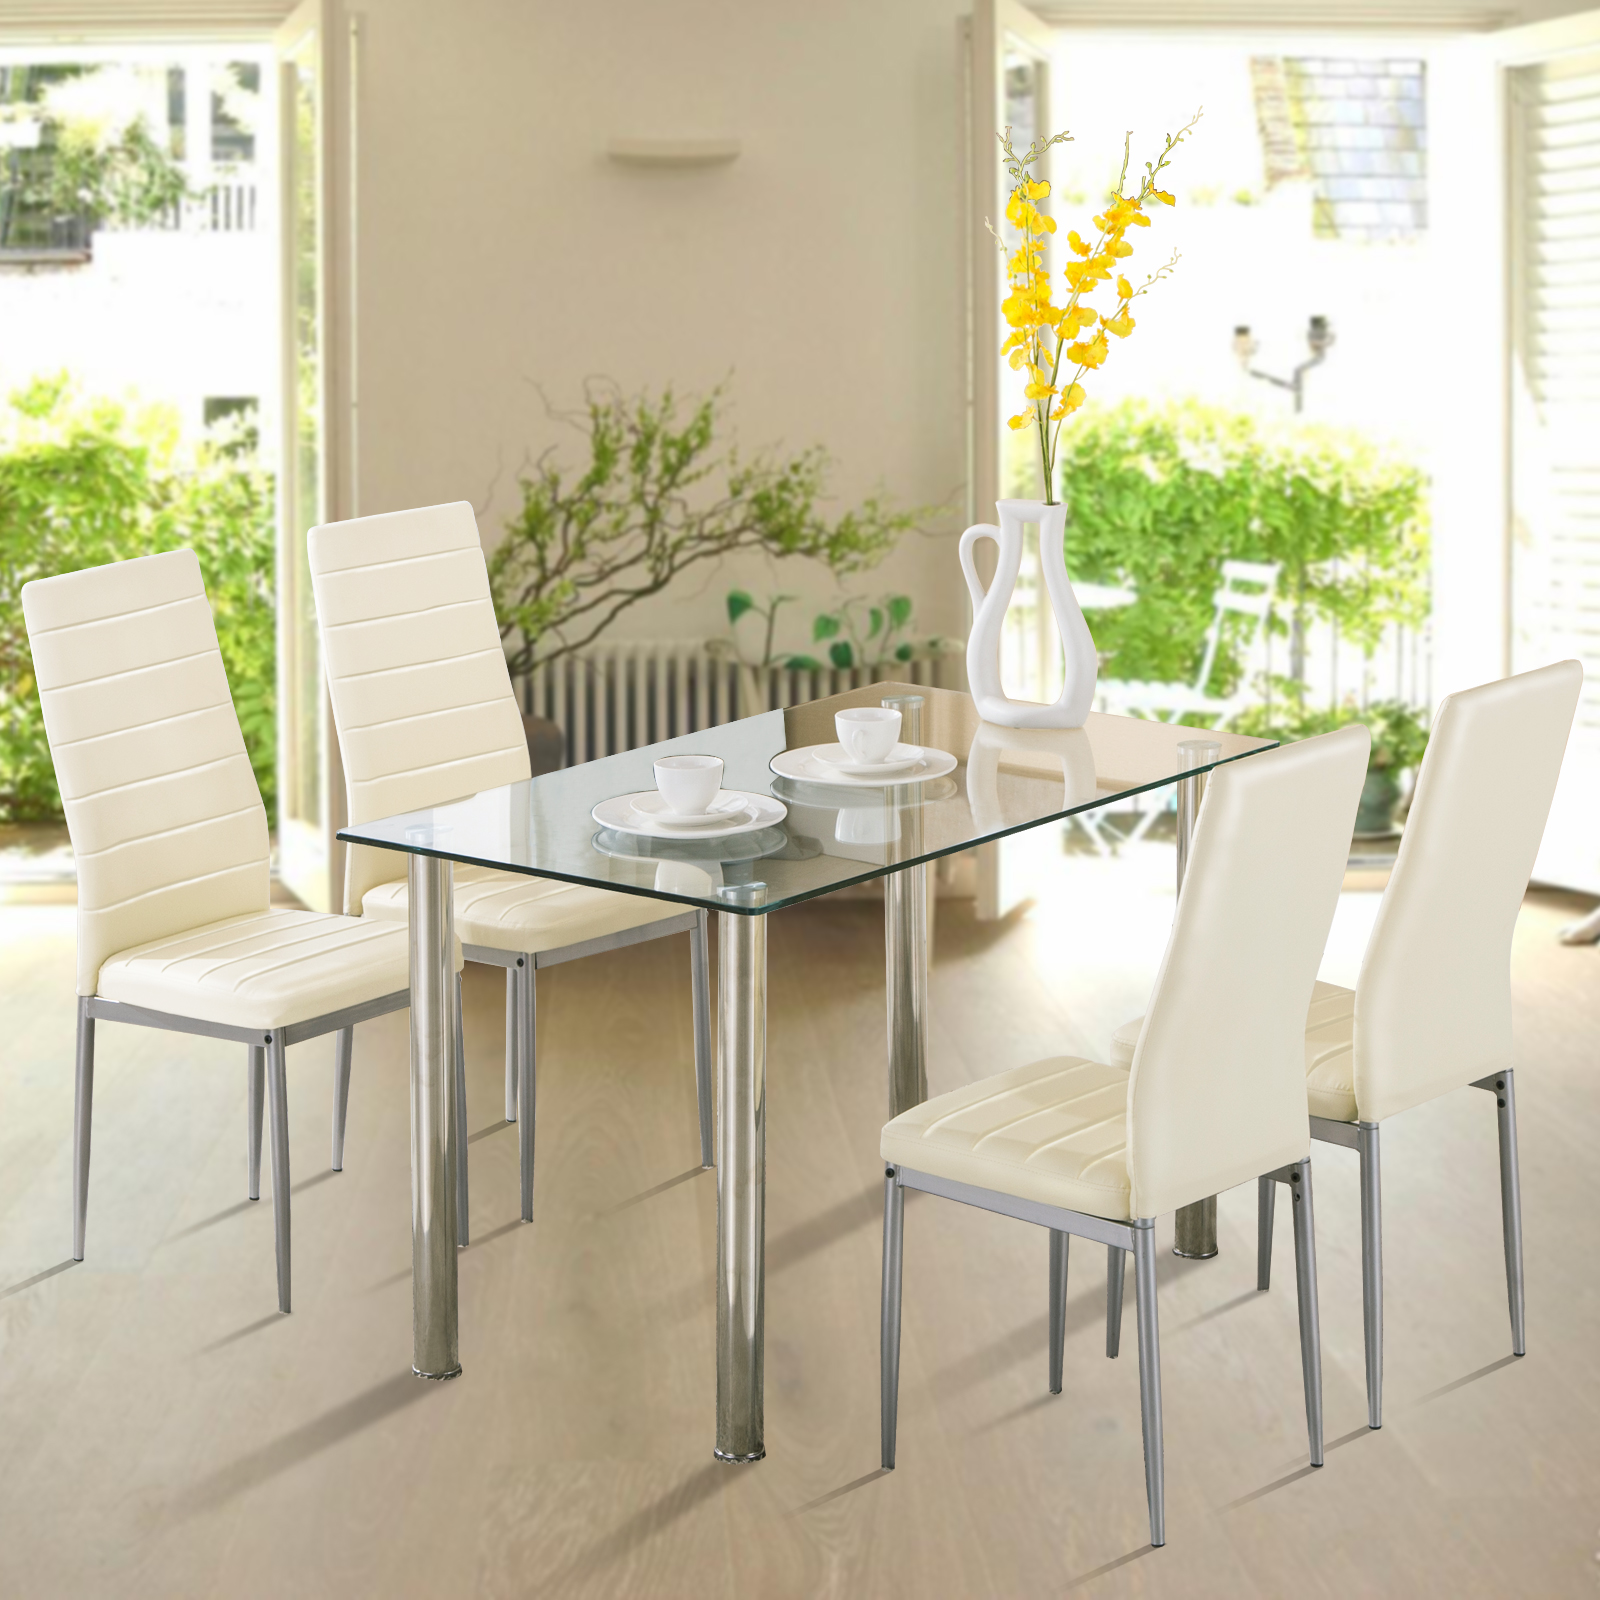 Glass Dining Table Set: 5 Piece Dining Table Set 4 Chairs Glass Metal Kitchen Room